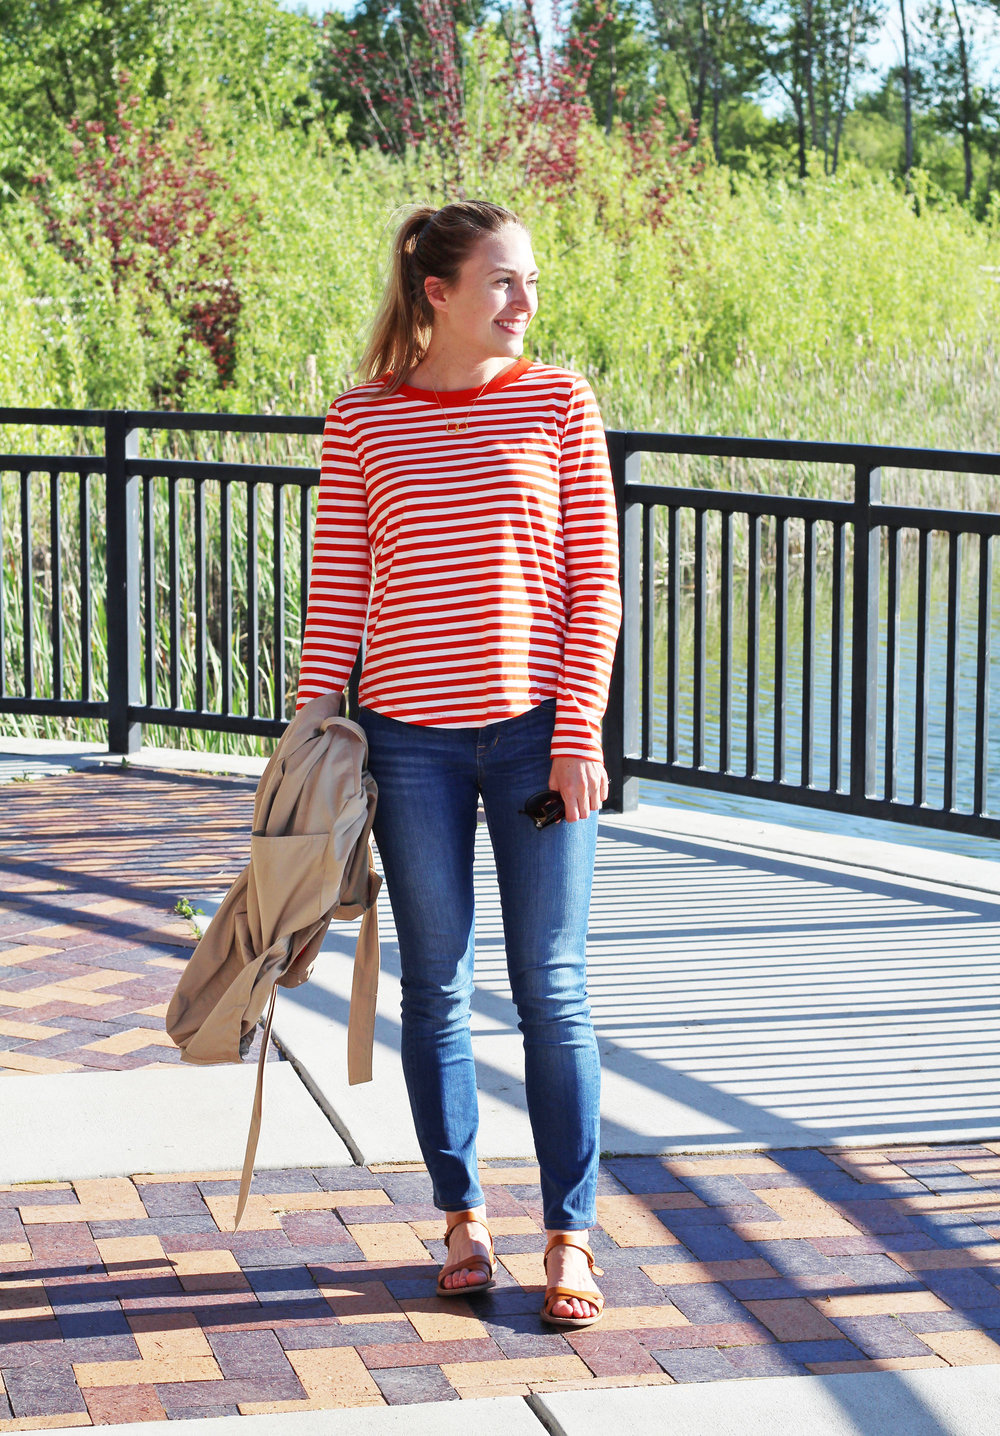 Classic spring outfit with red striped tee, skinny jeans, sandals — Cotton Cashmere Cat Hair